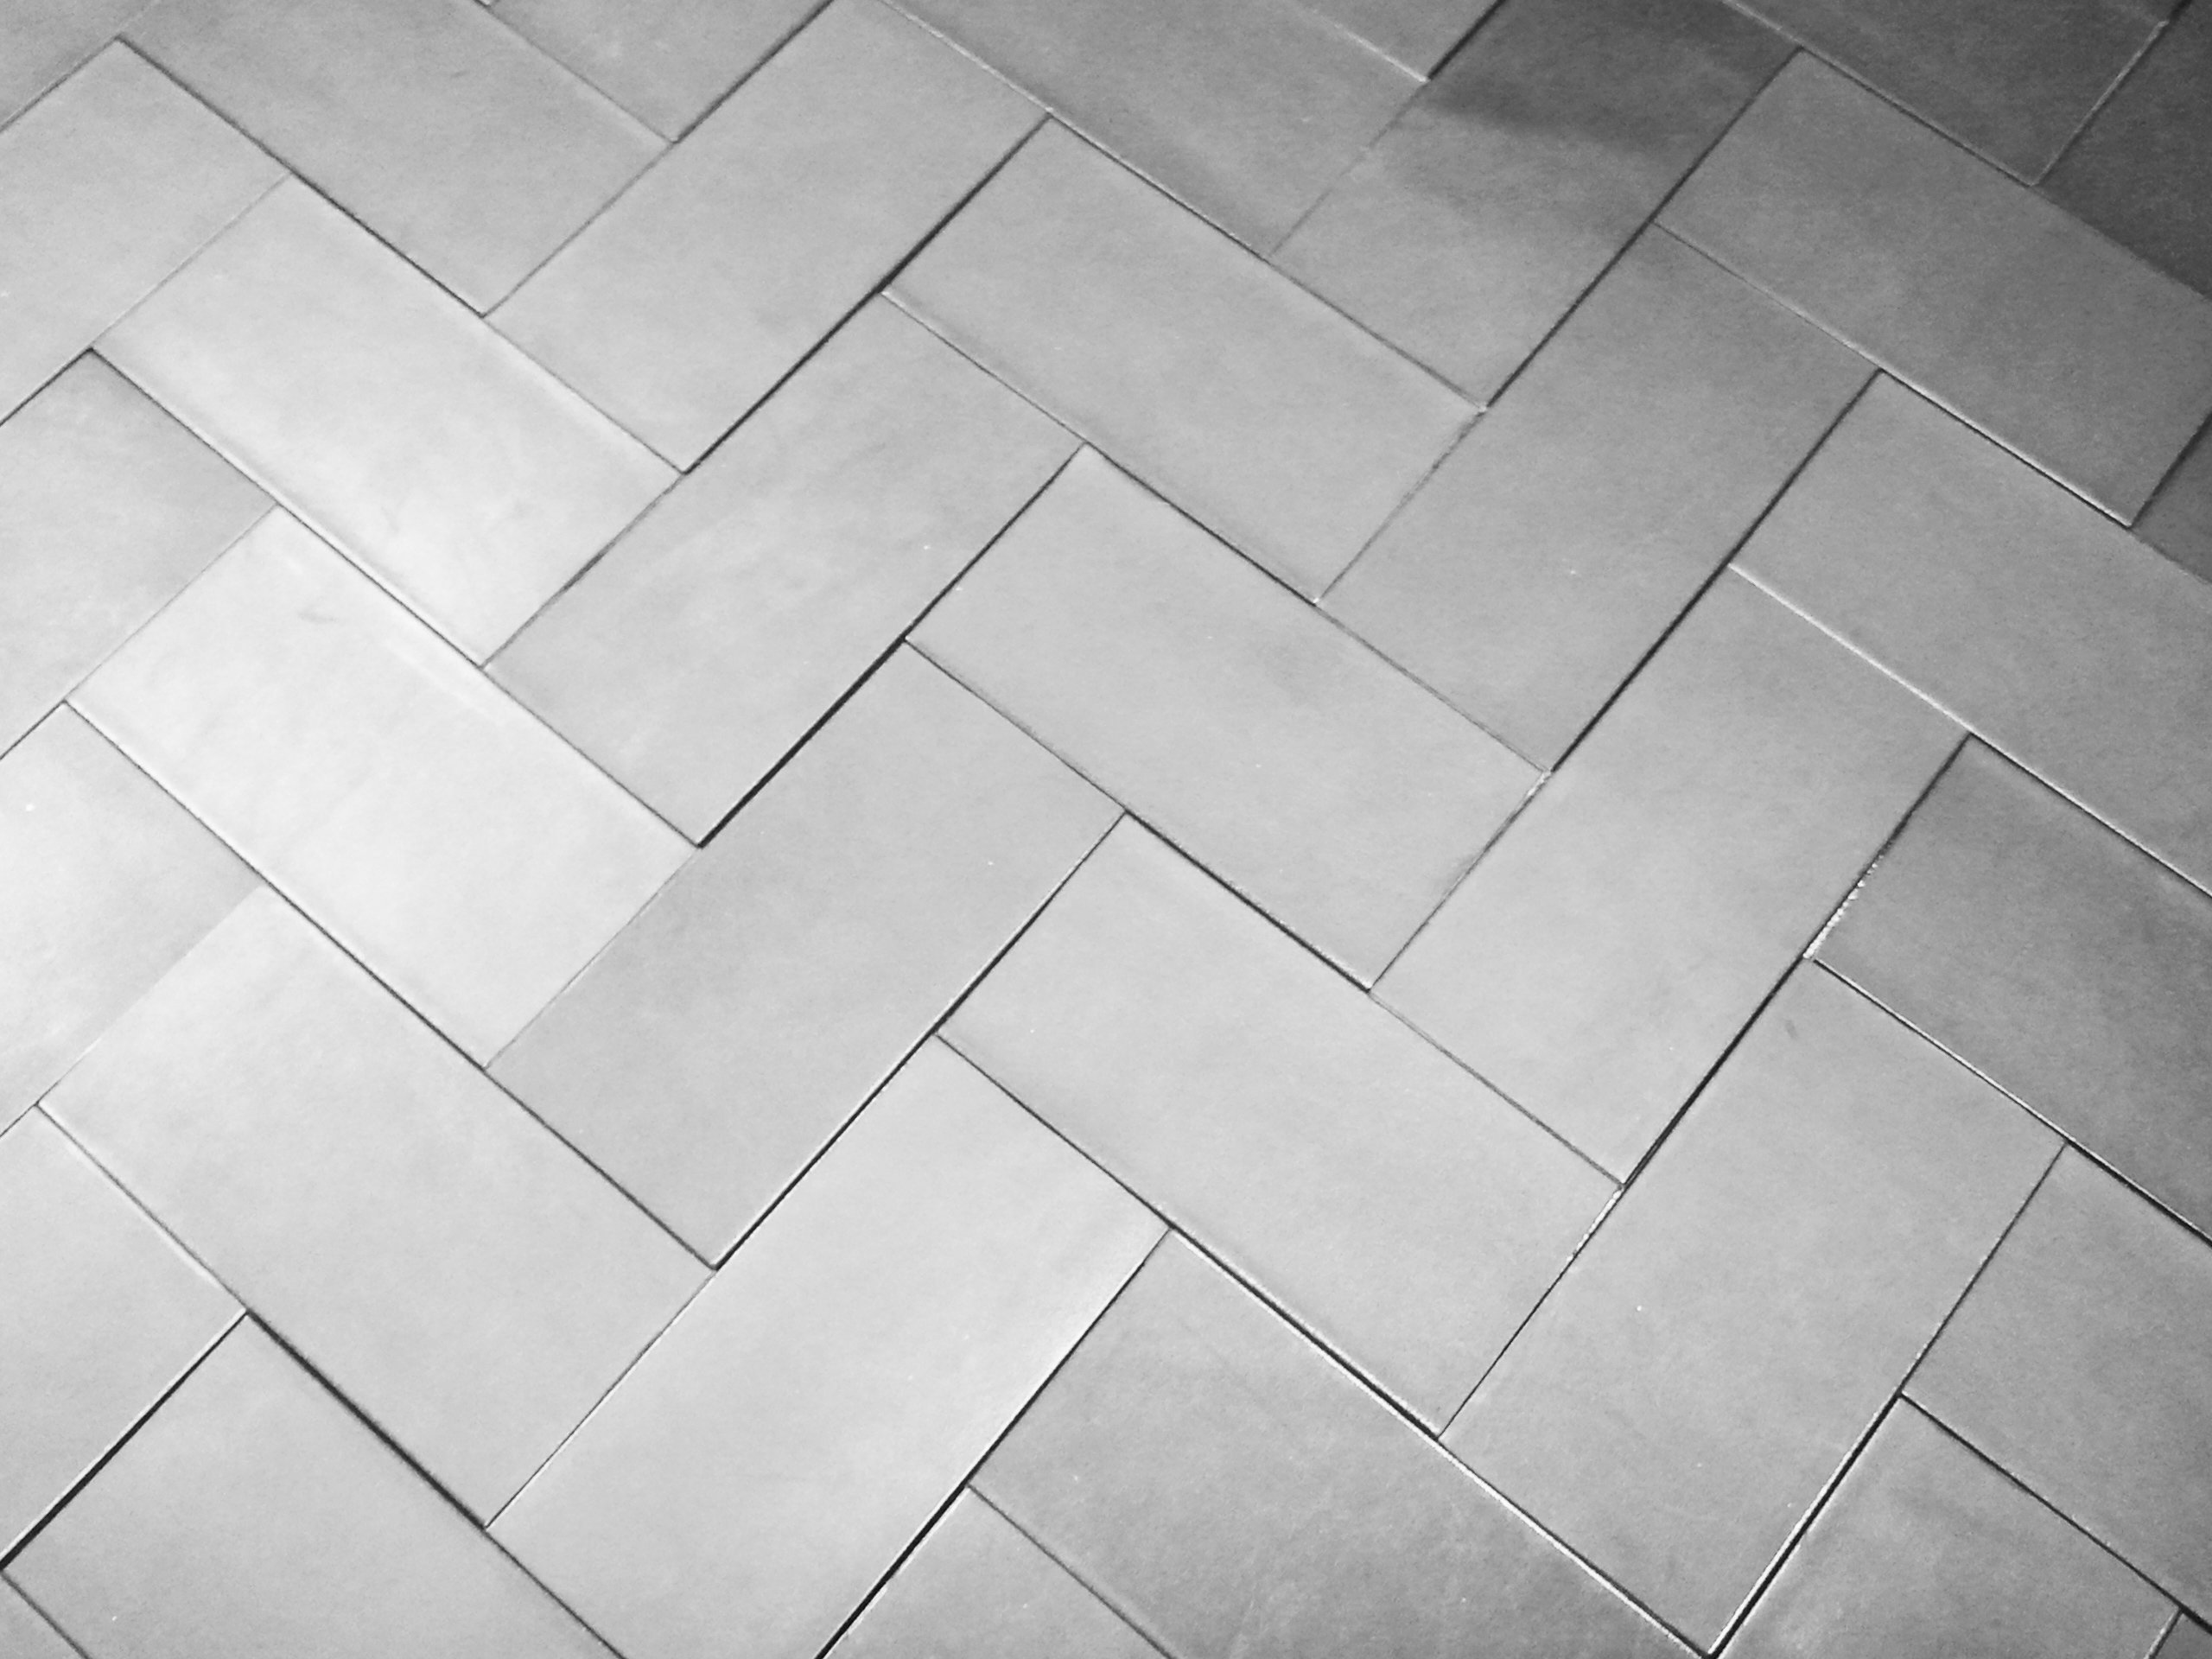 Leather wall tiles leather floor tiles keleen leathers inc leather floor tiles and leather wall tiles dailygadgetfo Gallery